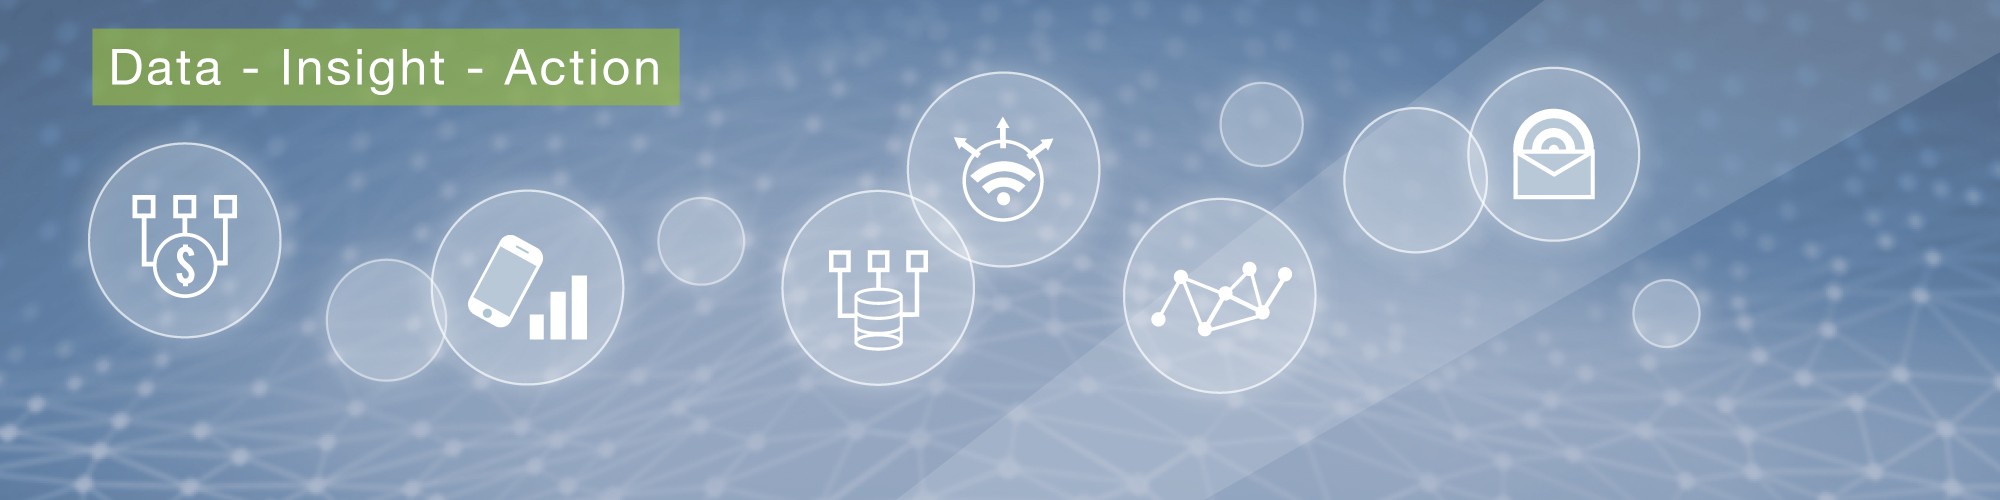 Banner image for the services page - illustration and icons of our service offerings.